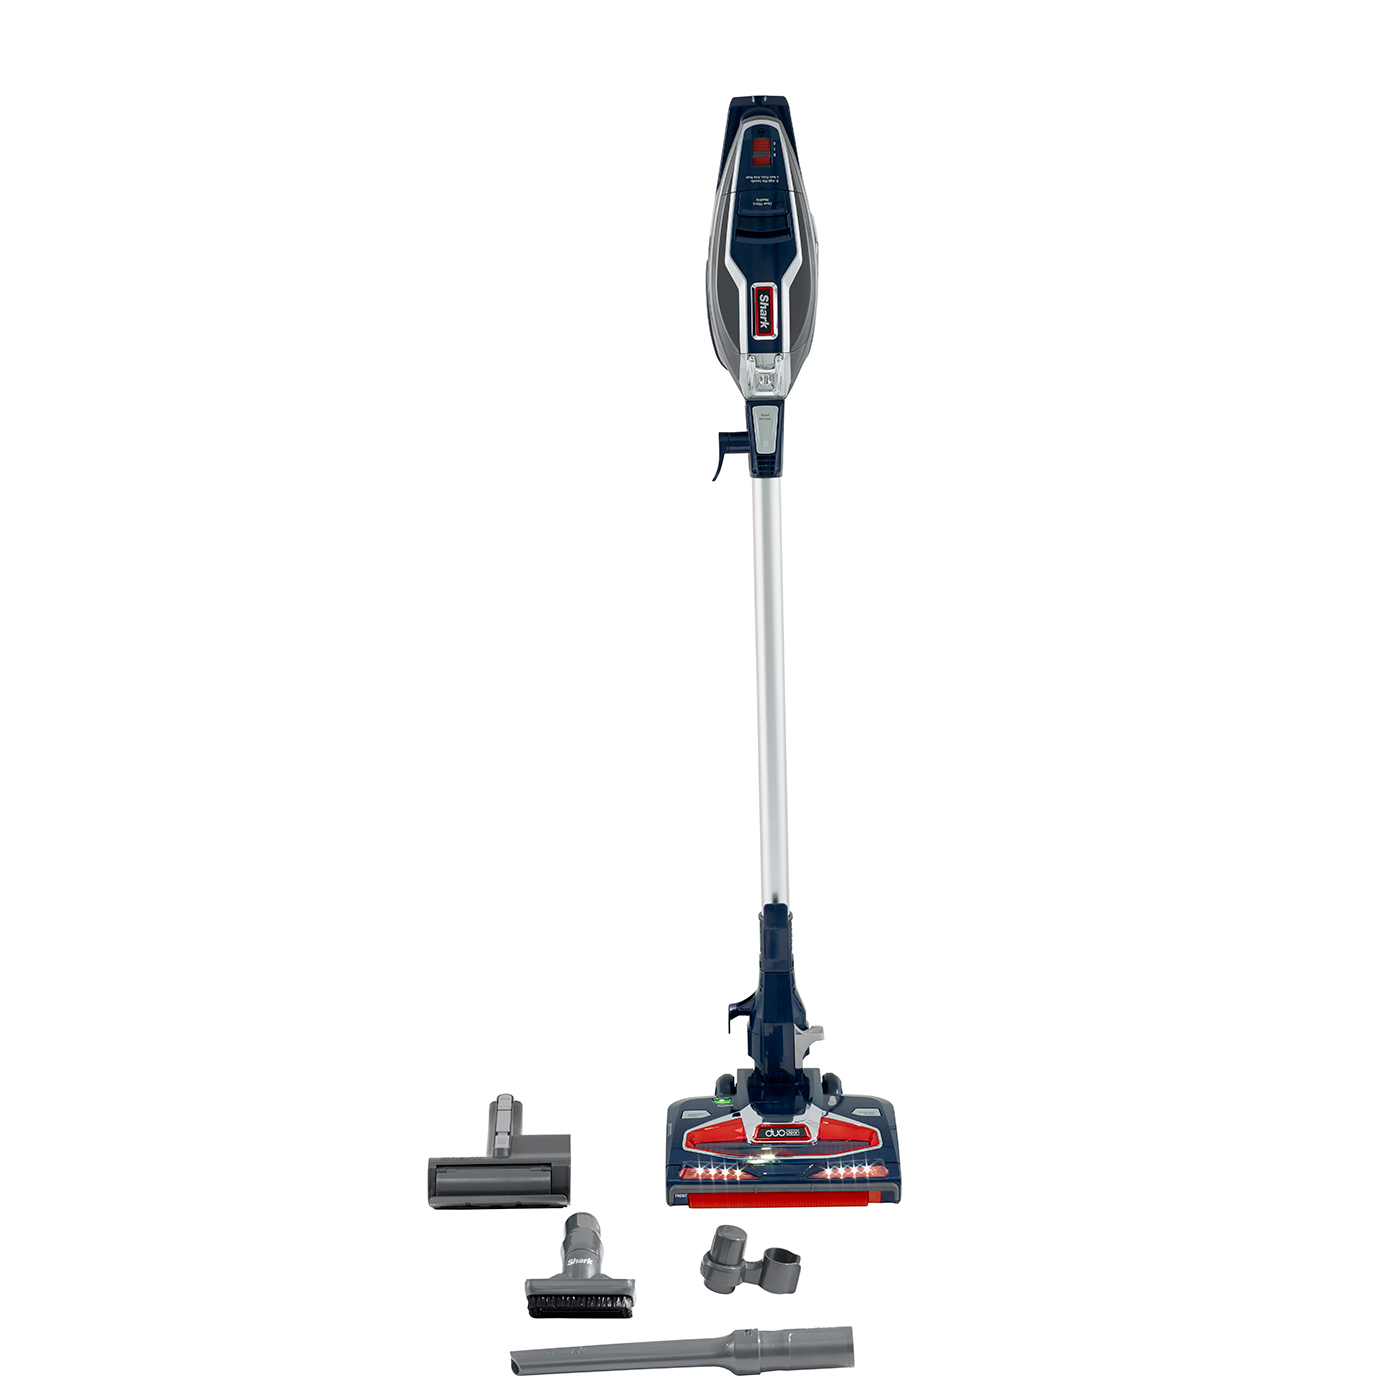 Shark Duoclean Lightweight Corded Stick Vacuum Cleaner